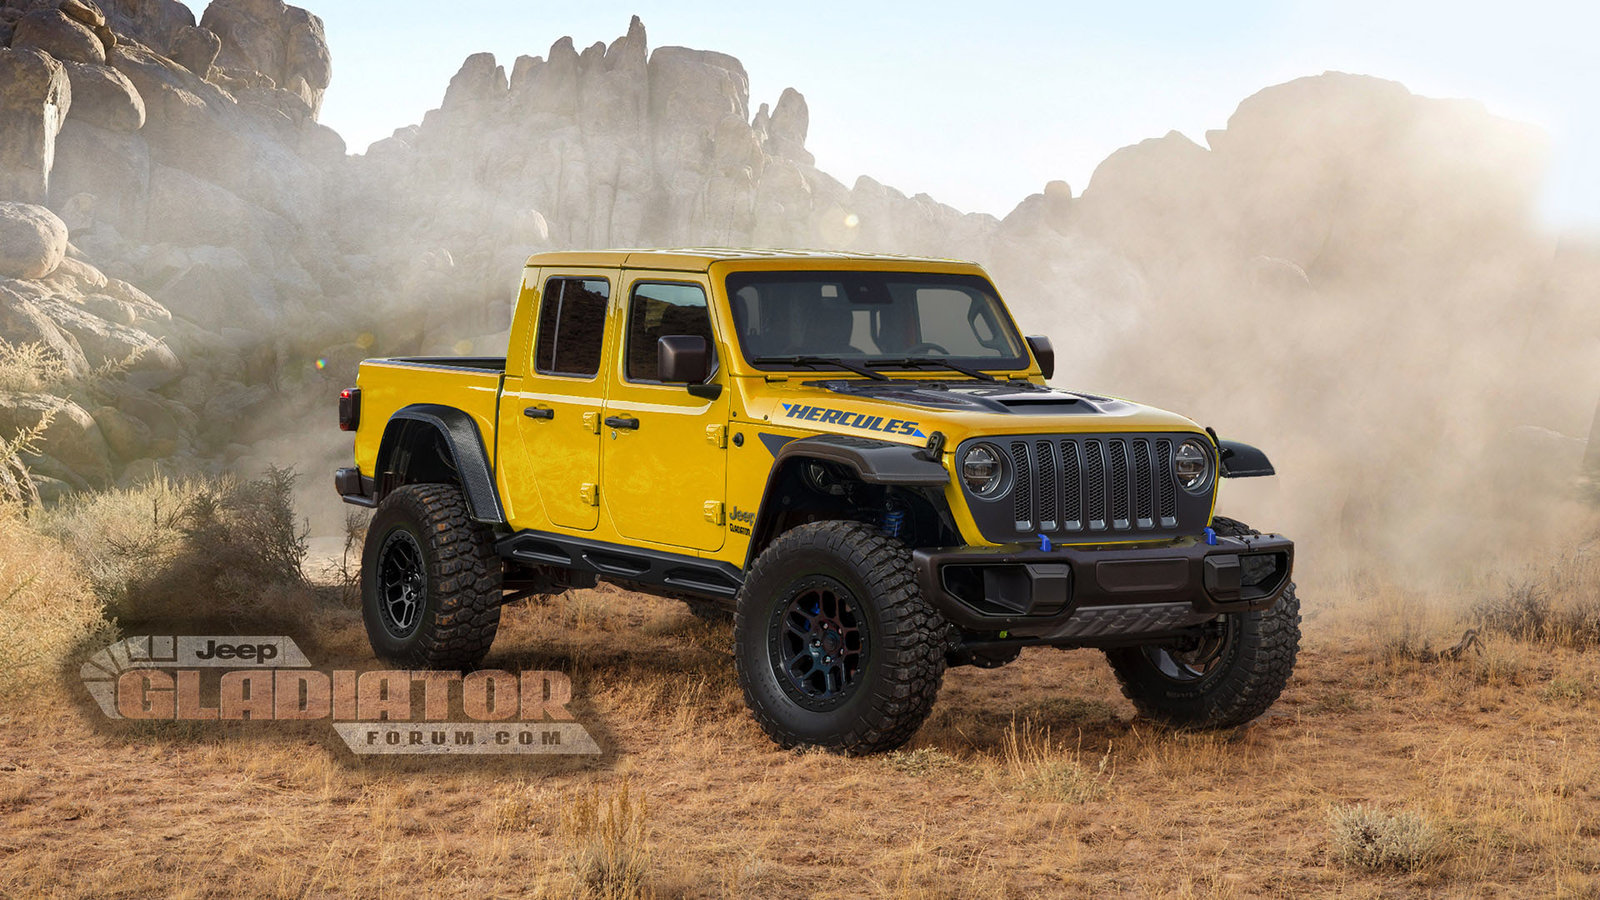 Jeep Gladiator Hercules renderings (3)